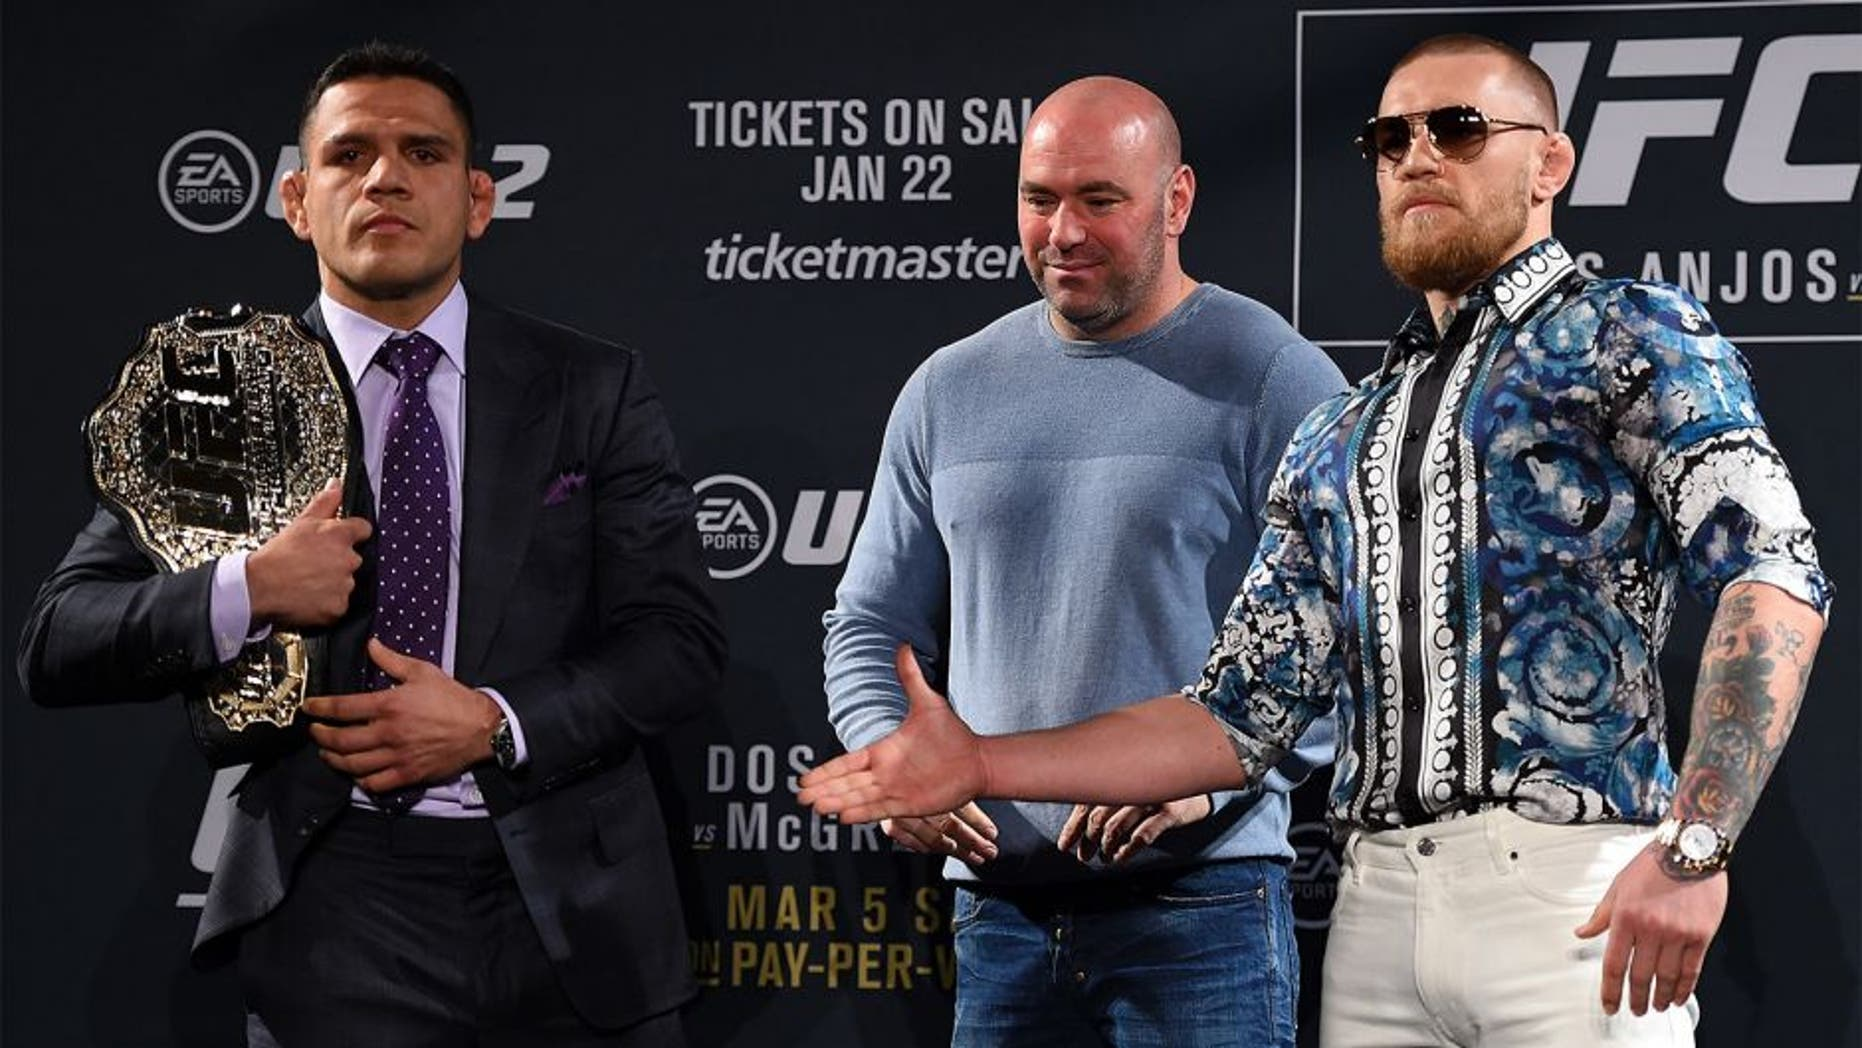 LAS VEGAS, NV - JANUARY 20: UFC President Dana White squares off Rafael dos Anjos of Brazil (L) and Conor McGregor of Ireland (R) during the UFC 197 on-sale press conference event inside MGM Grand Hotel & Casino on January 20, 2016 in Las Vegas, Nevada. (Photo by Jeff Bottari/Zuffa LLC/Zuffa LLC via Getty Images)